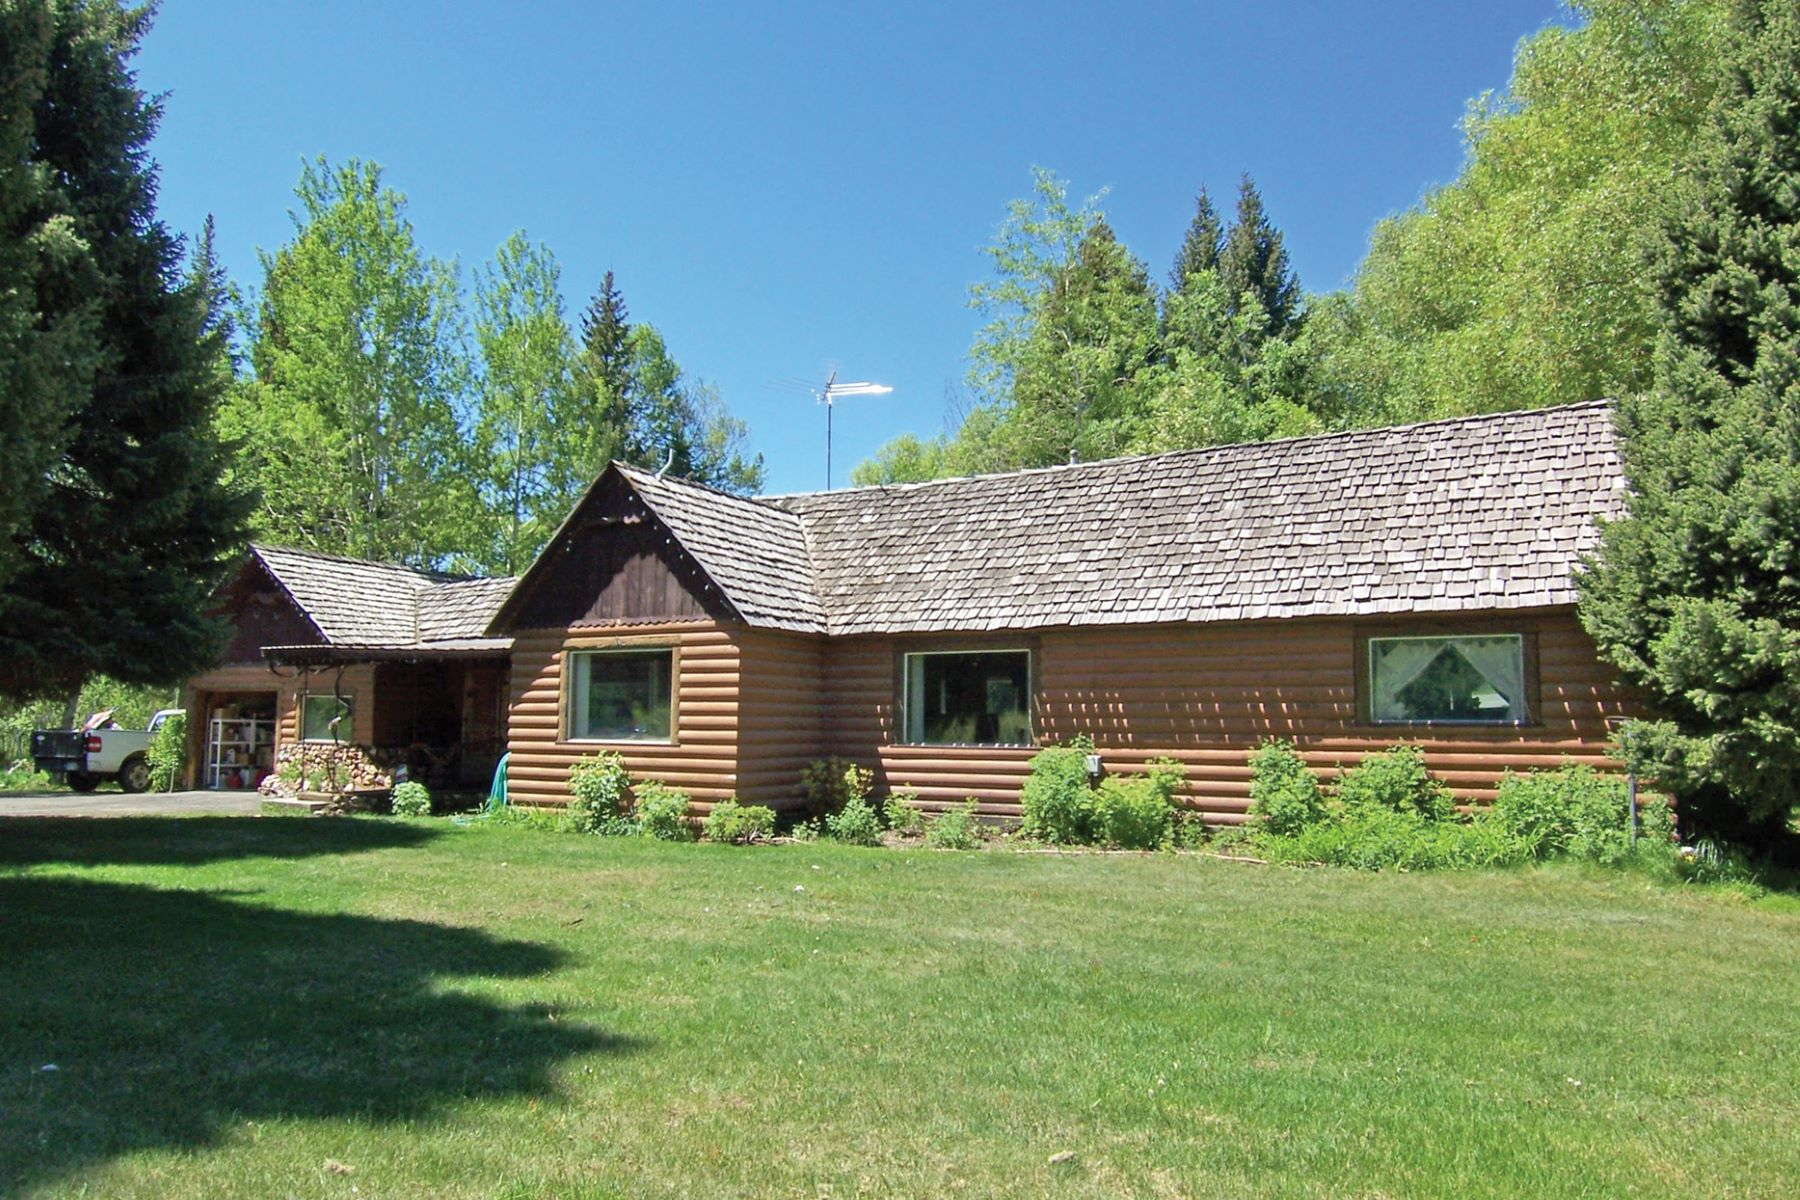 Single Family Home for Sale at 2 Homes on 11 Acres on Driggs Main St. 552 South Hwy 33 (Main Street), Driggs, Idaho, 83422 Jackson Hole, United States